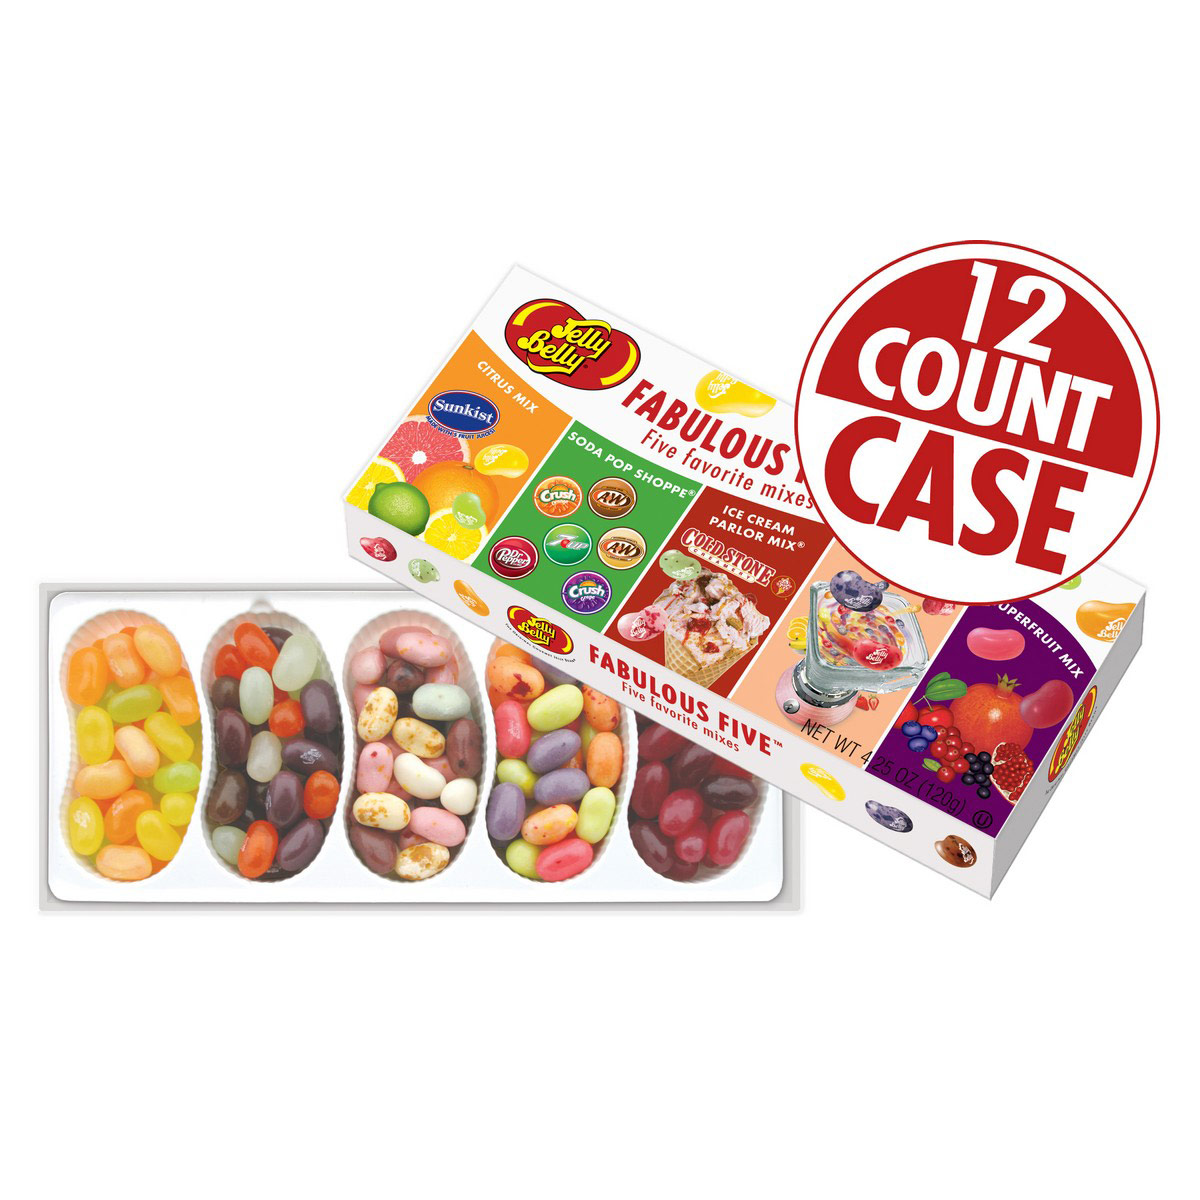 Fabulous Five<sup>&reg;</sup> jelly Bean Gift Box - 12-Count Case